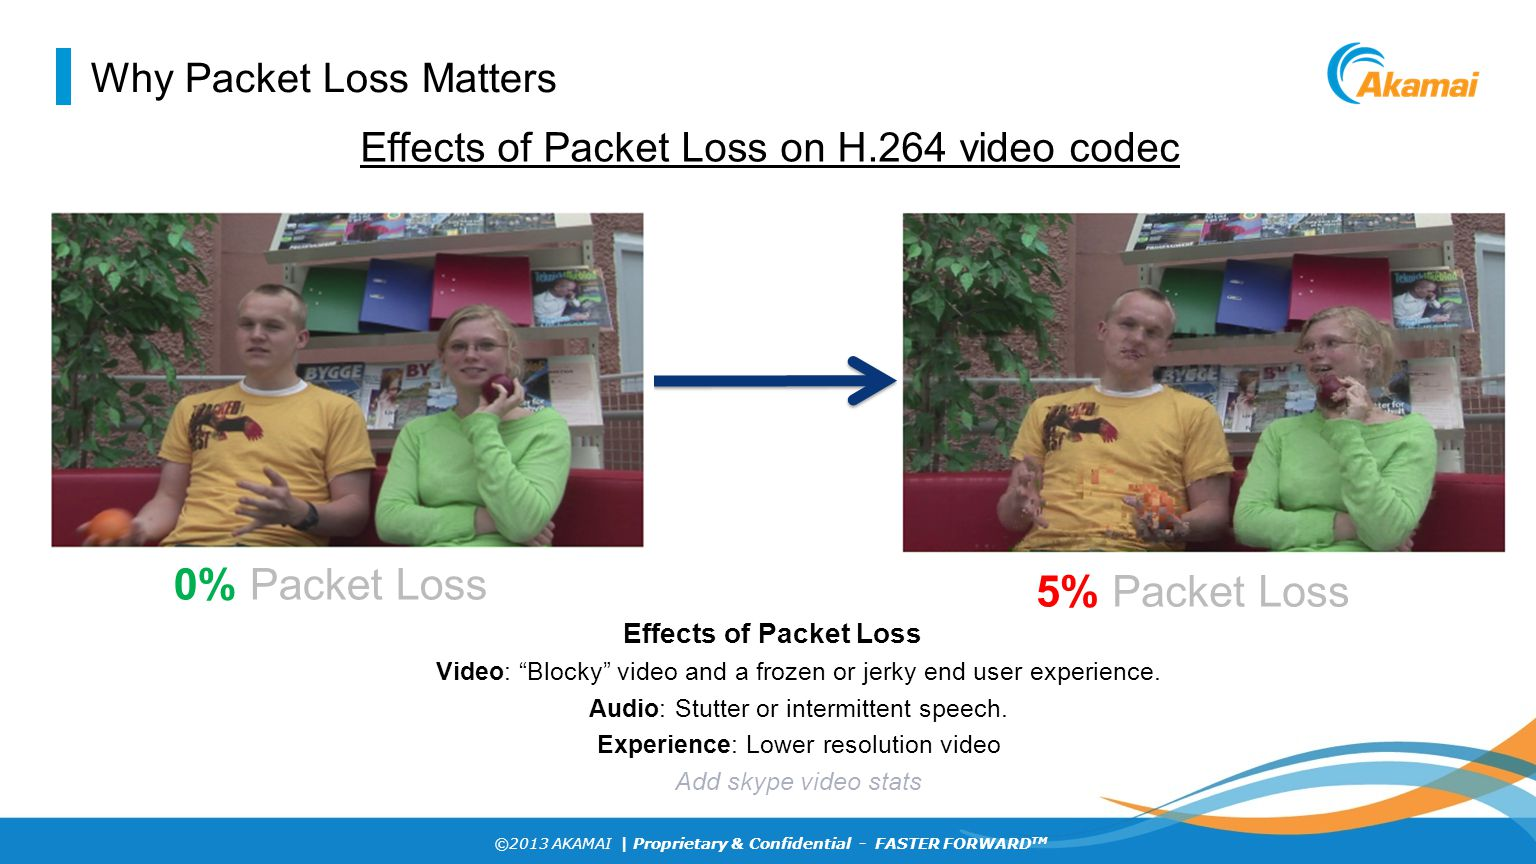 Why Packet Loss Matters